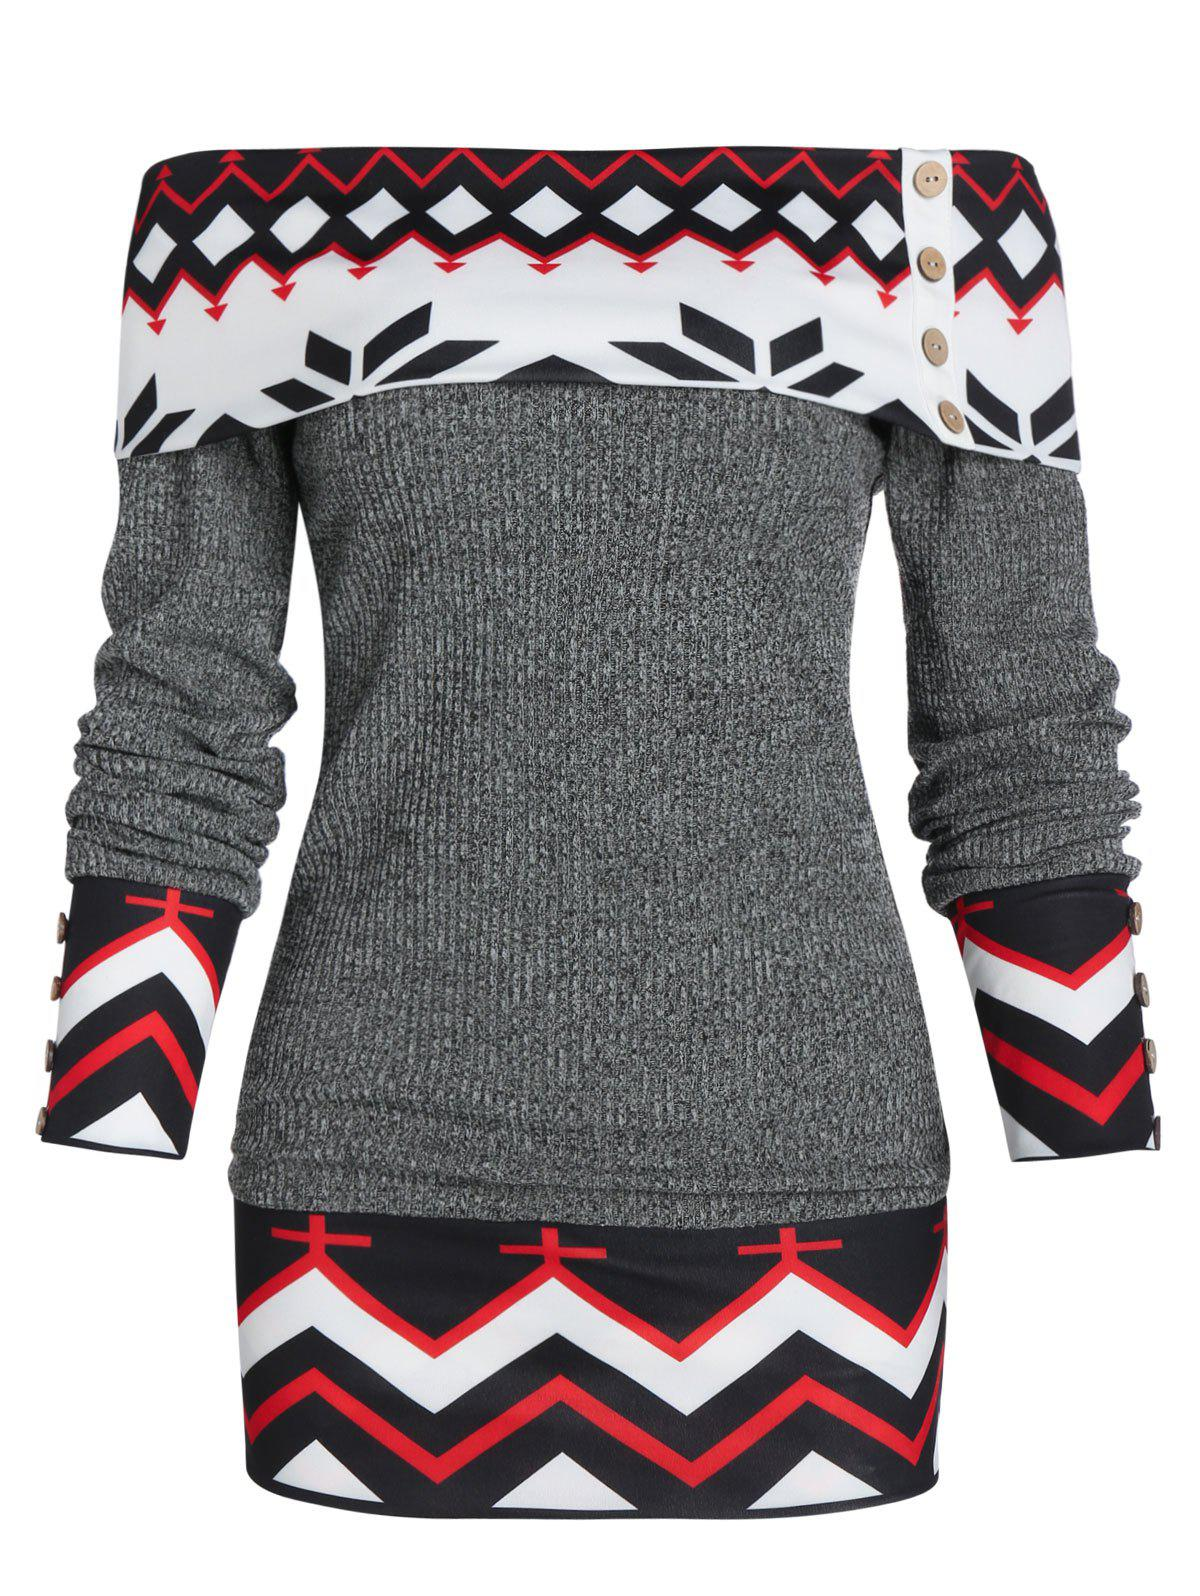 Geometric Off The Shoulder Foldover Knitted Sweater - GRAY L